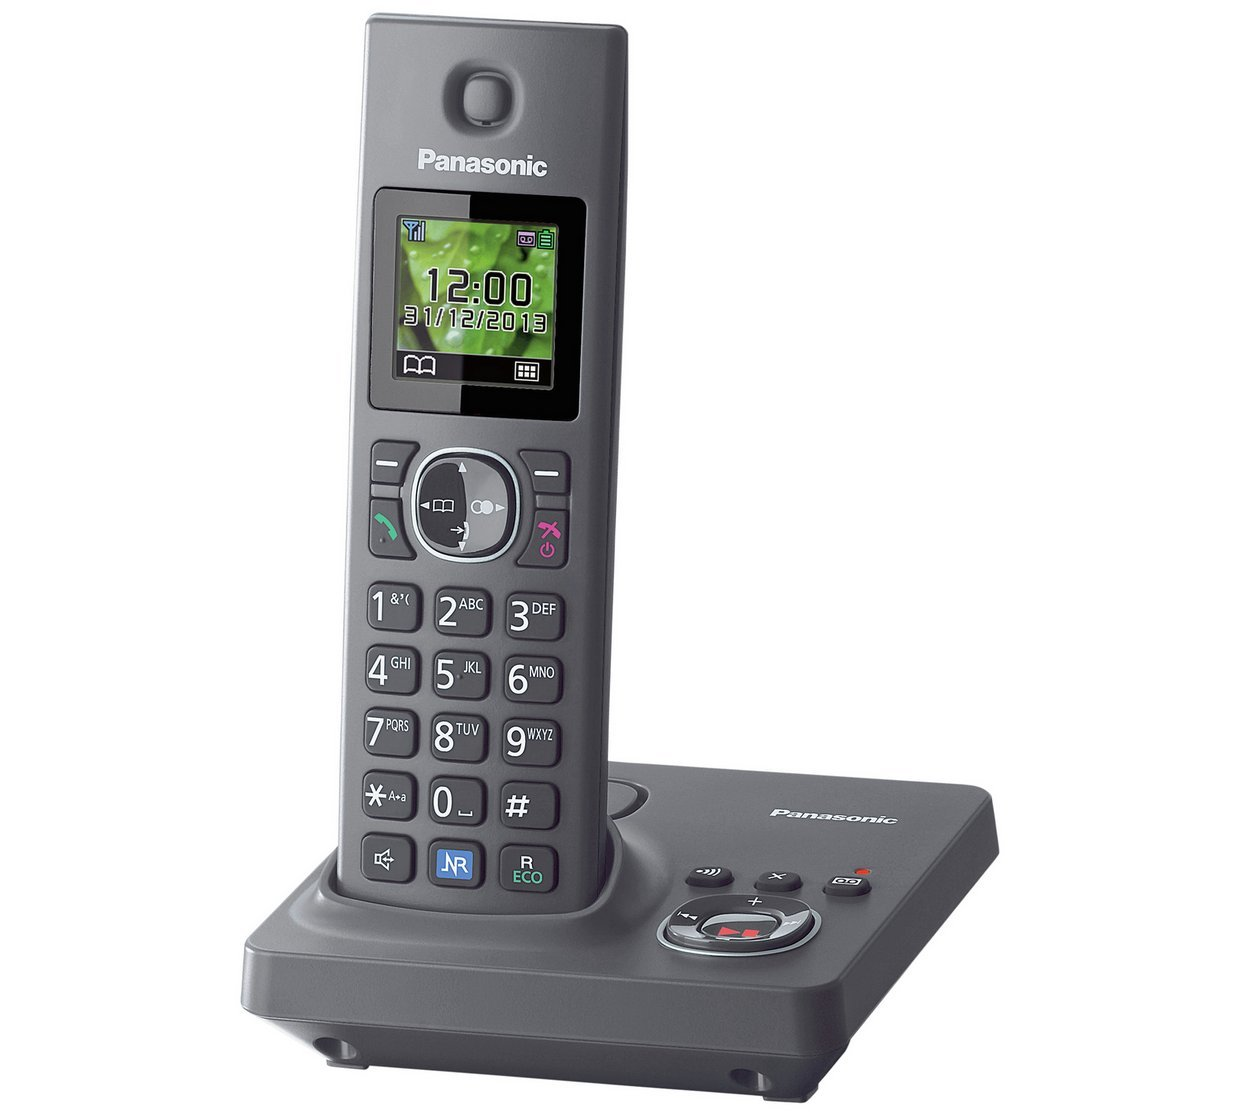 Panasonic - KX-TG7921E - Cordless Telephone/Answer M/c - Single